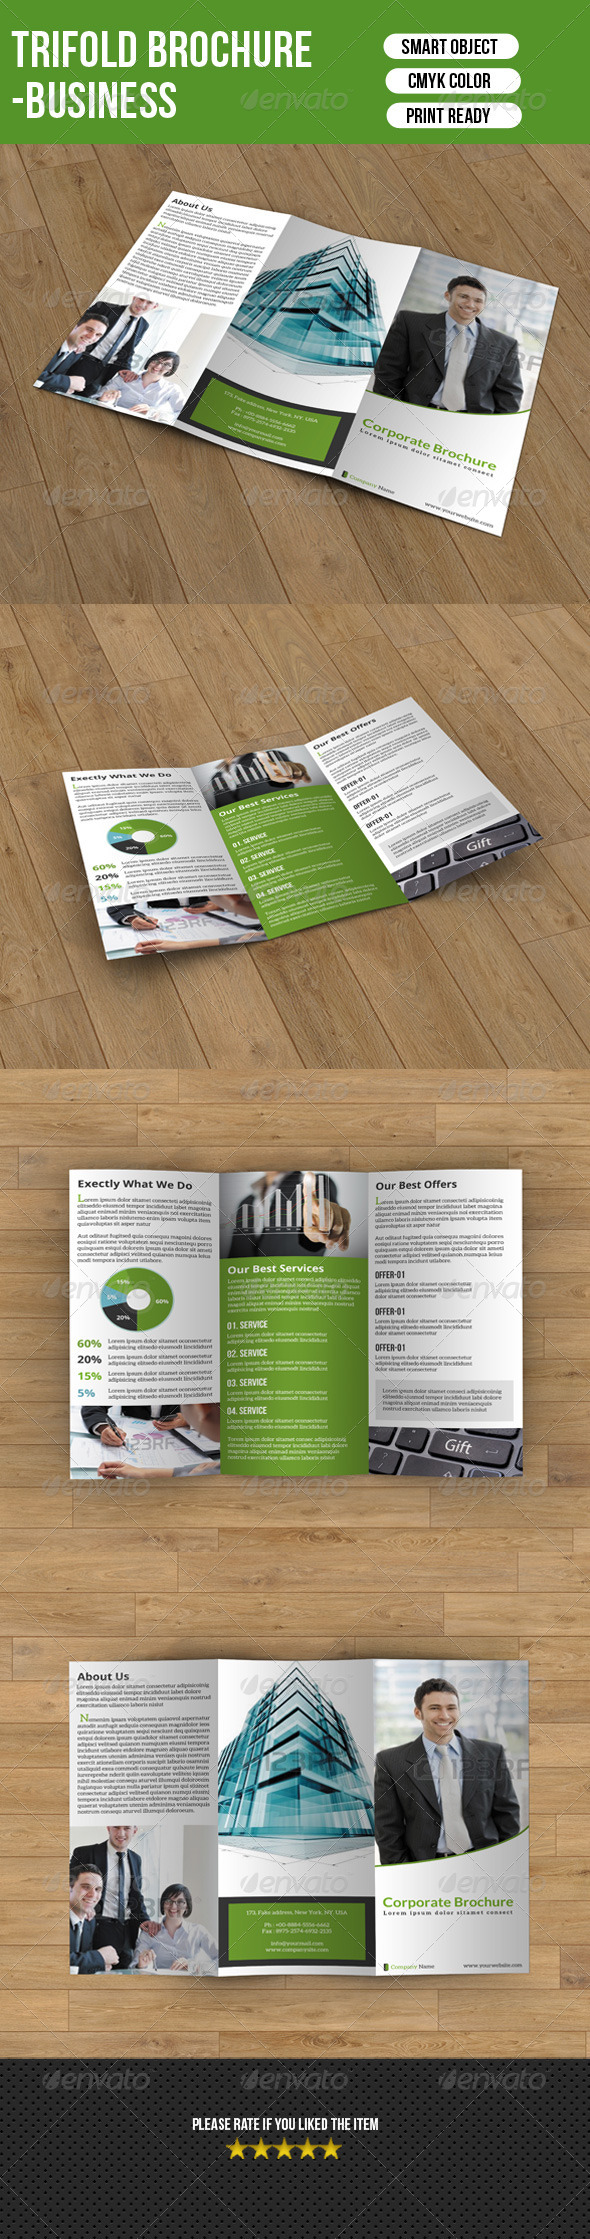 GraphicRiver Trifold Brochure-Business 7628985